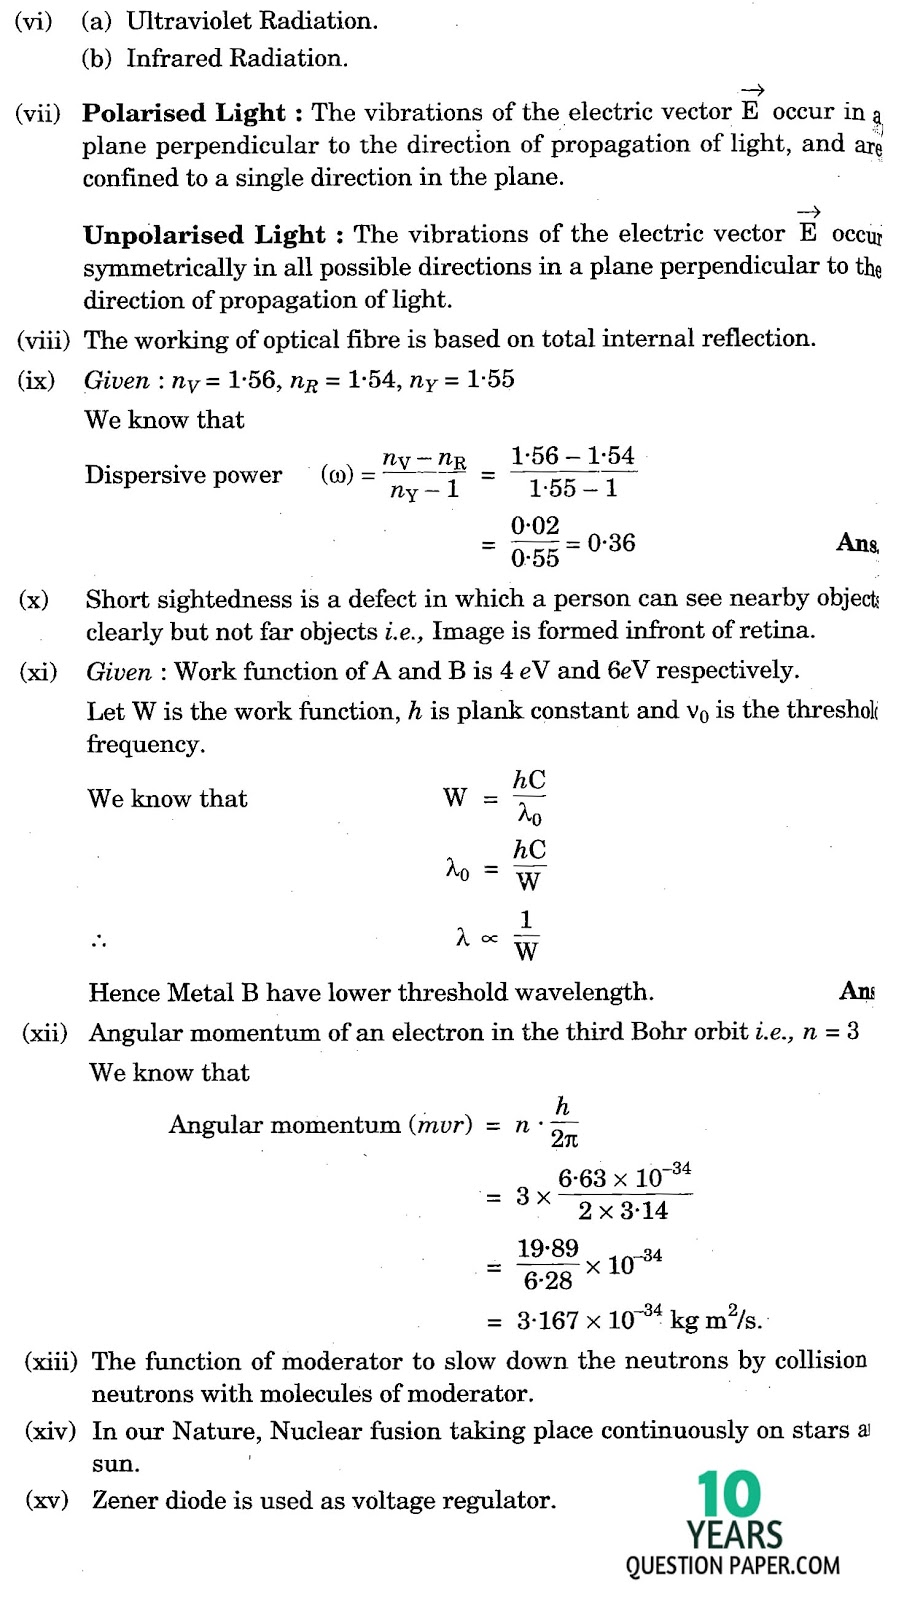 isc 2016 physics solved paper 10 years question paper isc 2016 class 12th physics paper solved